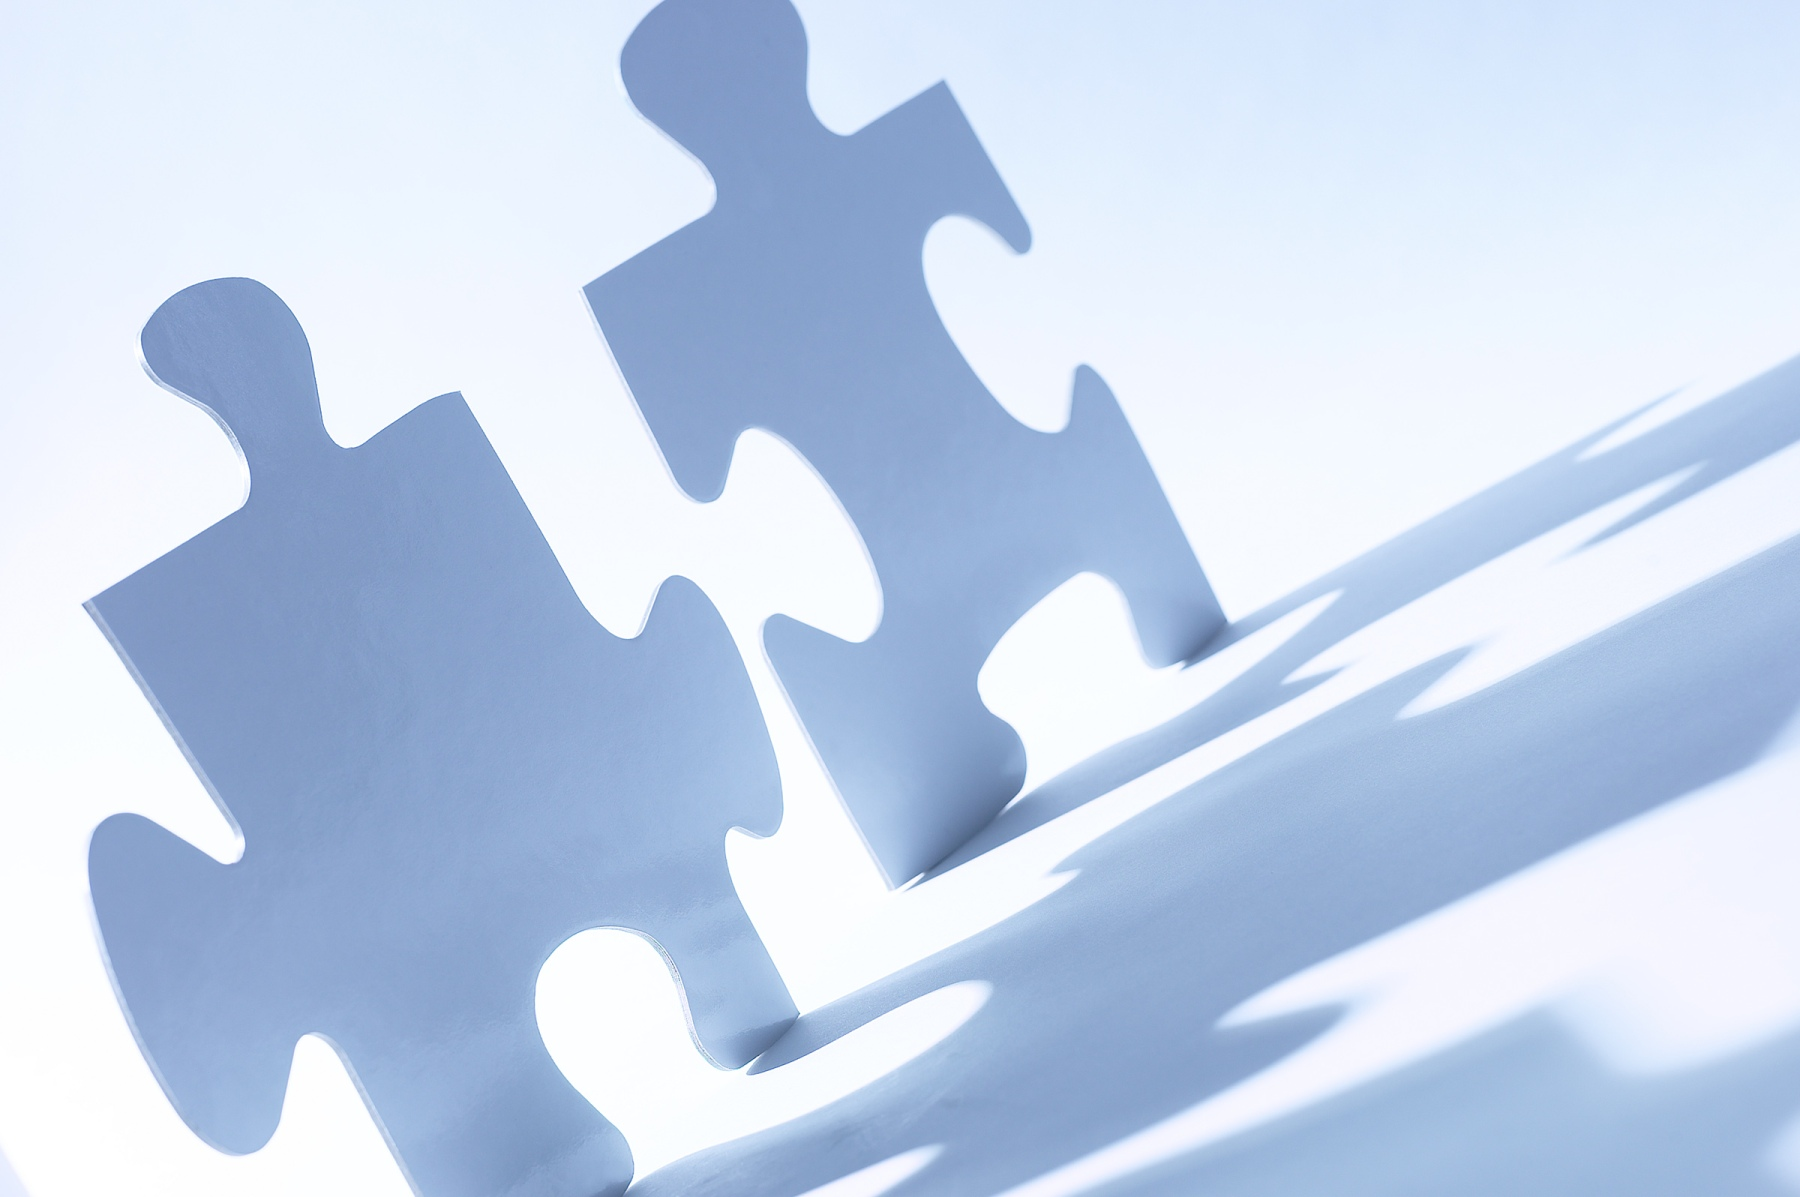 Puzzle pieces, leading change